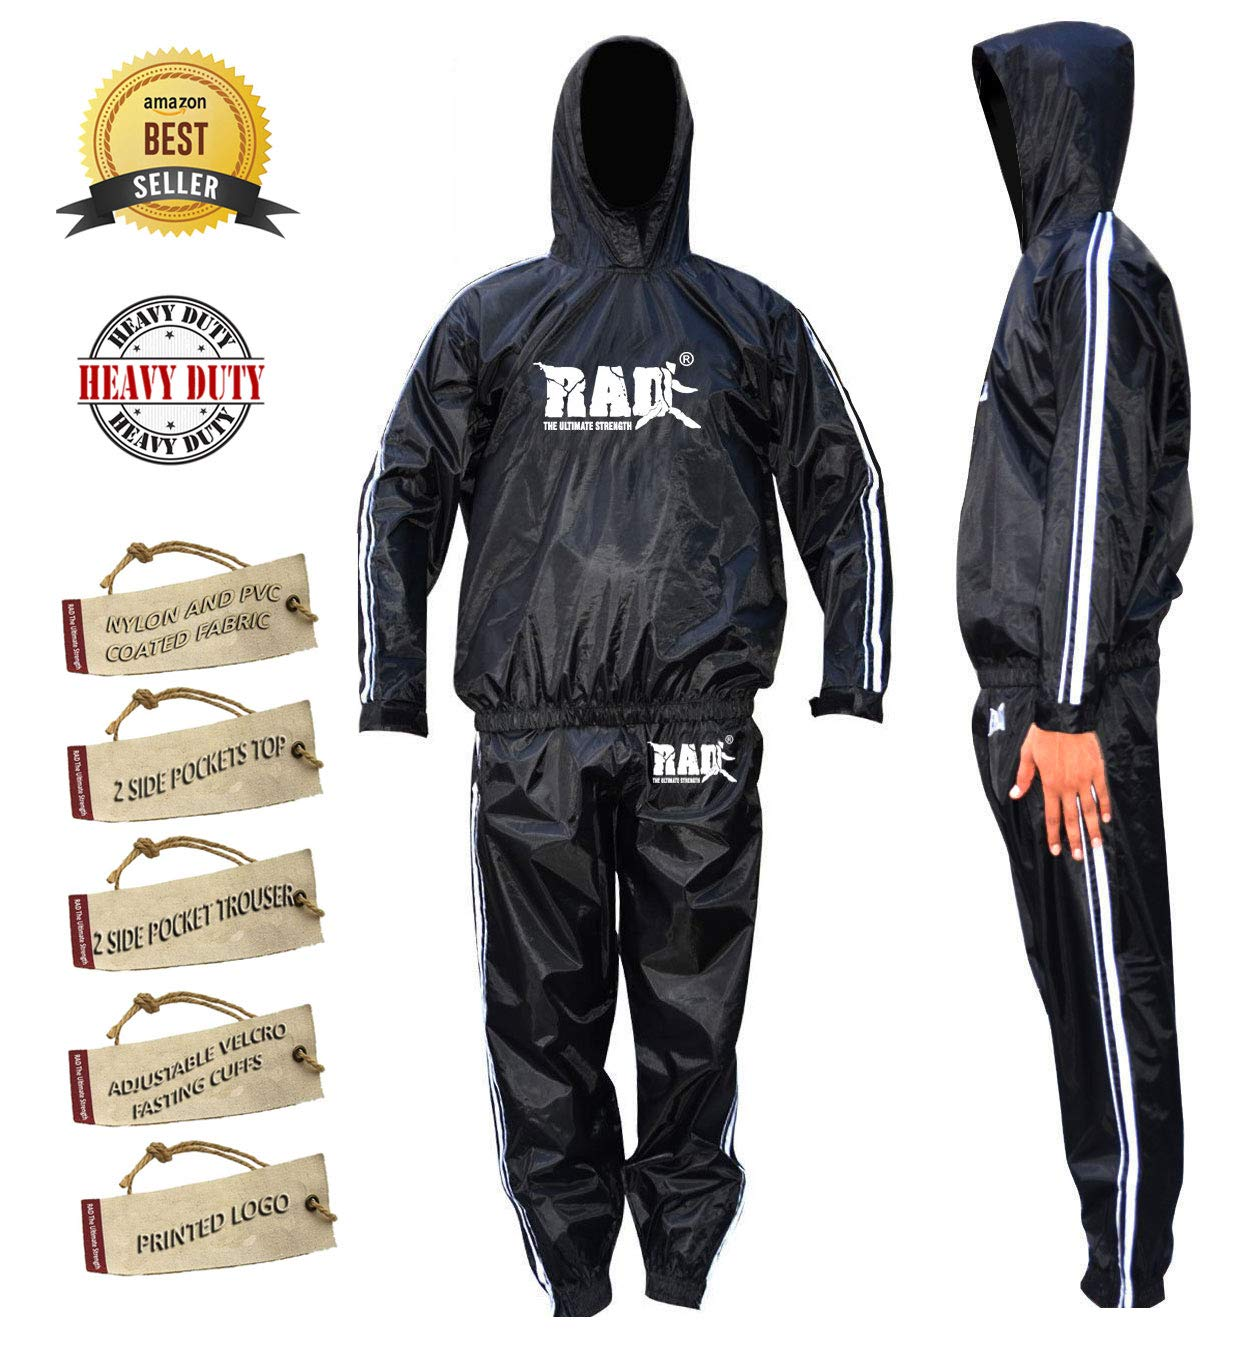 Rad Heavy Duty Sauna Suit Fitness Weight Loss Sweat Suit Anti Rip With Hood